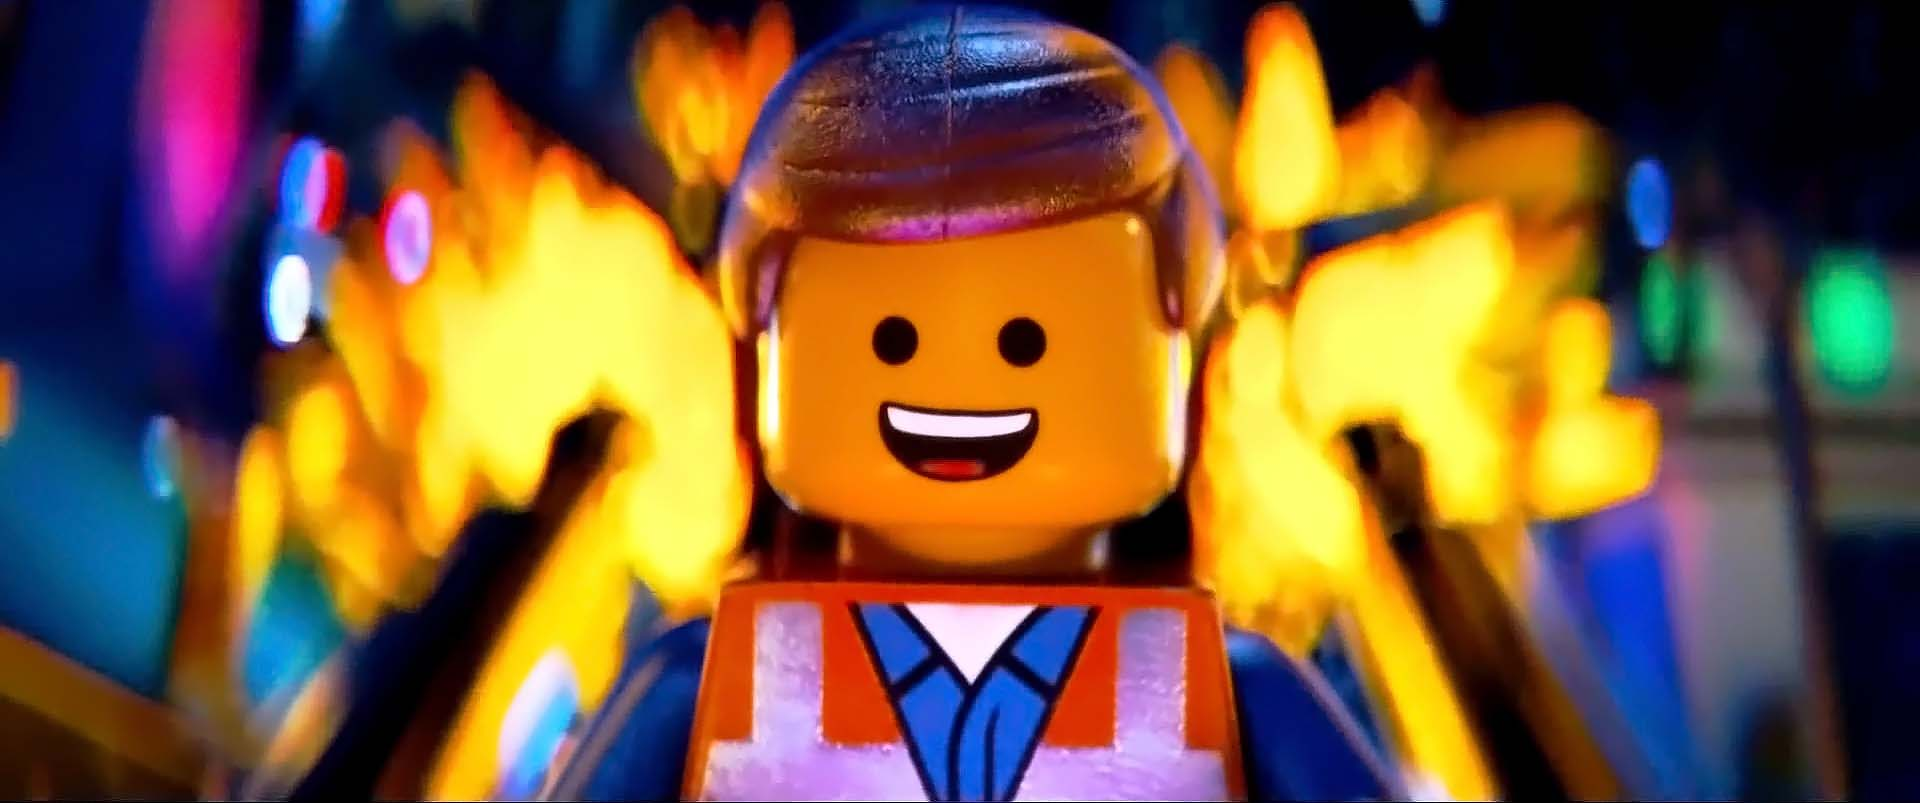 The Lego Movie Wallpaper All Hd Wallpapers Gallerry